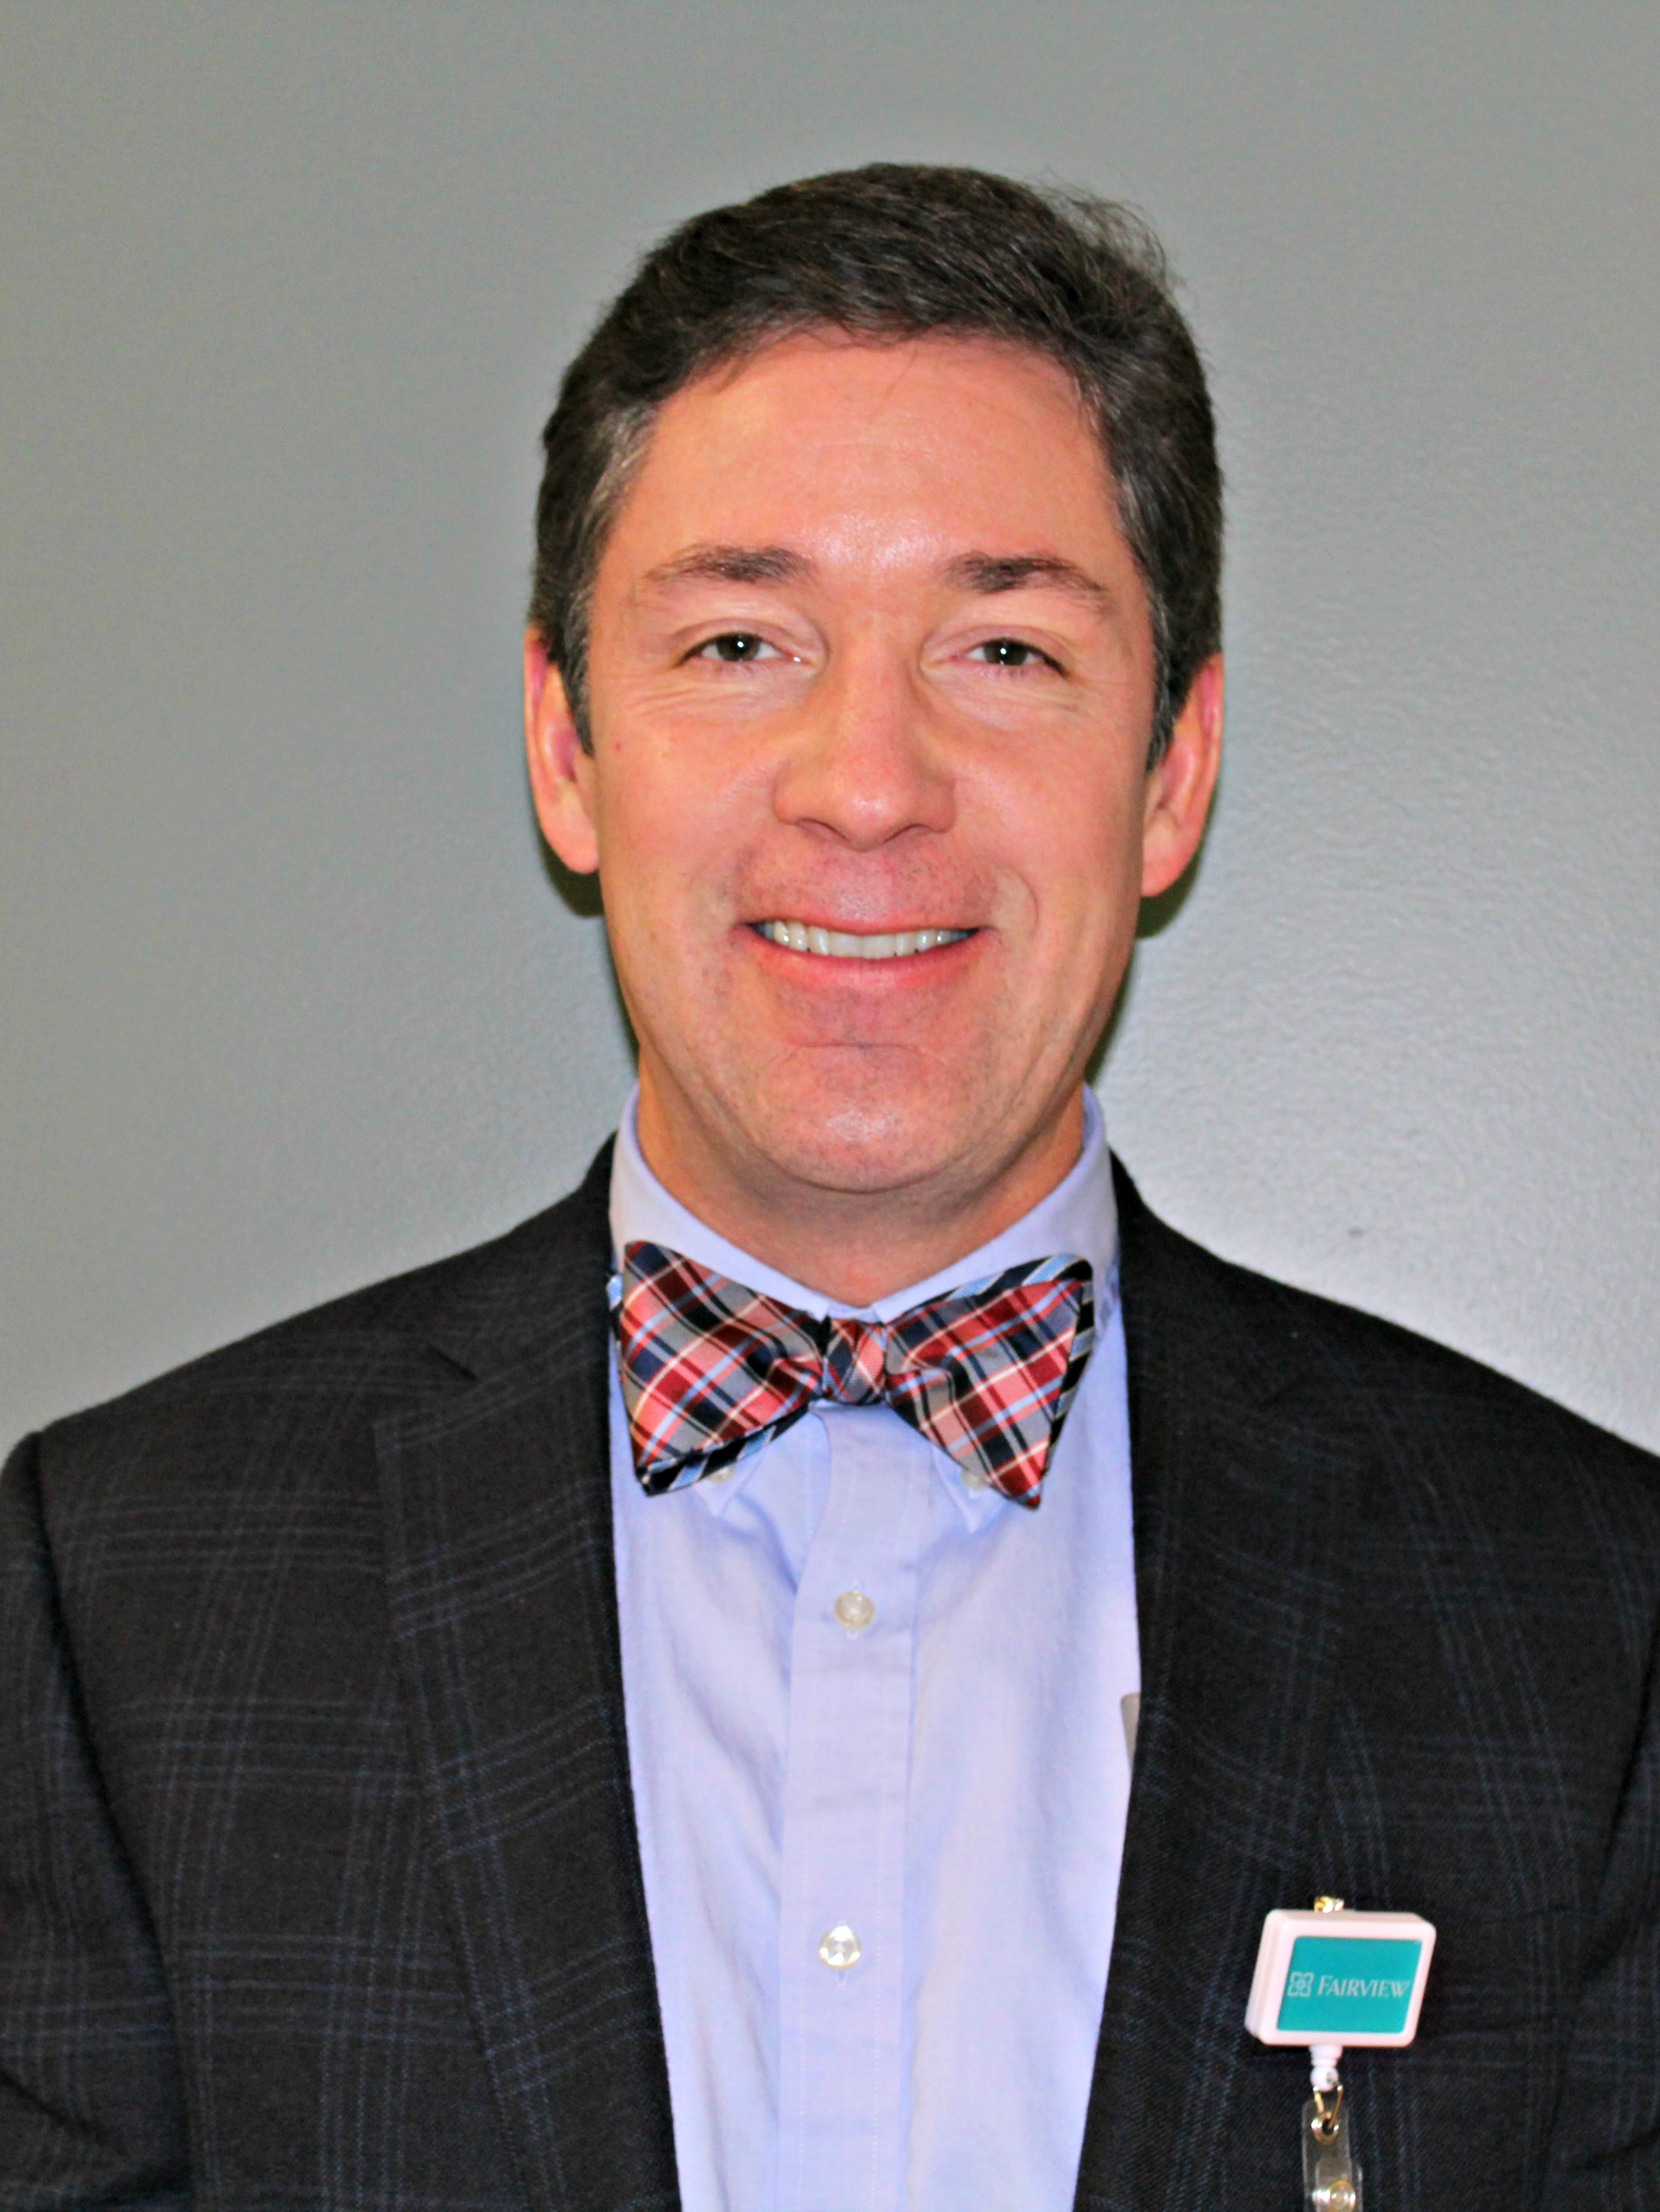 Dr. Michael Eichler, MD